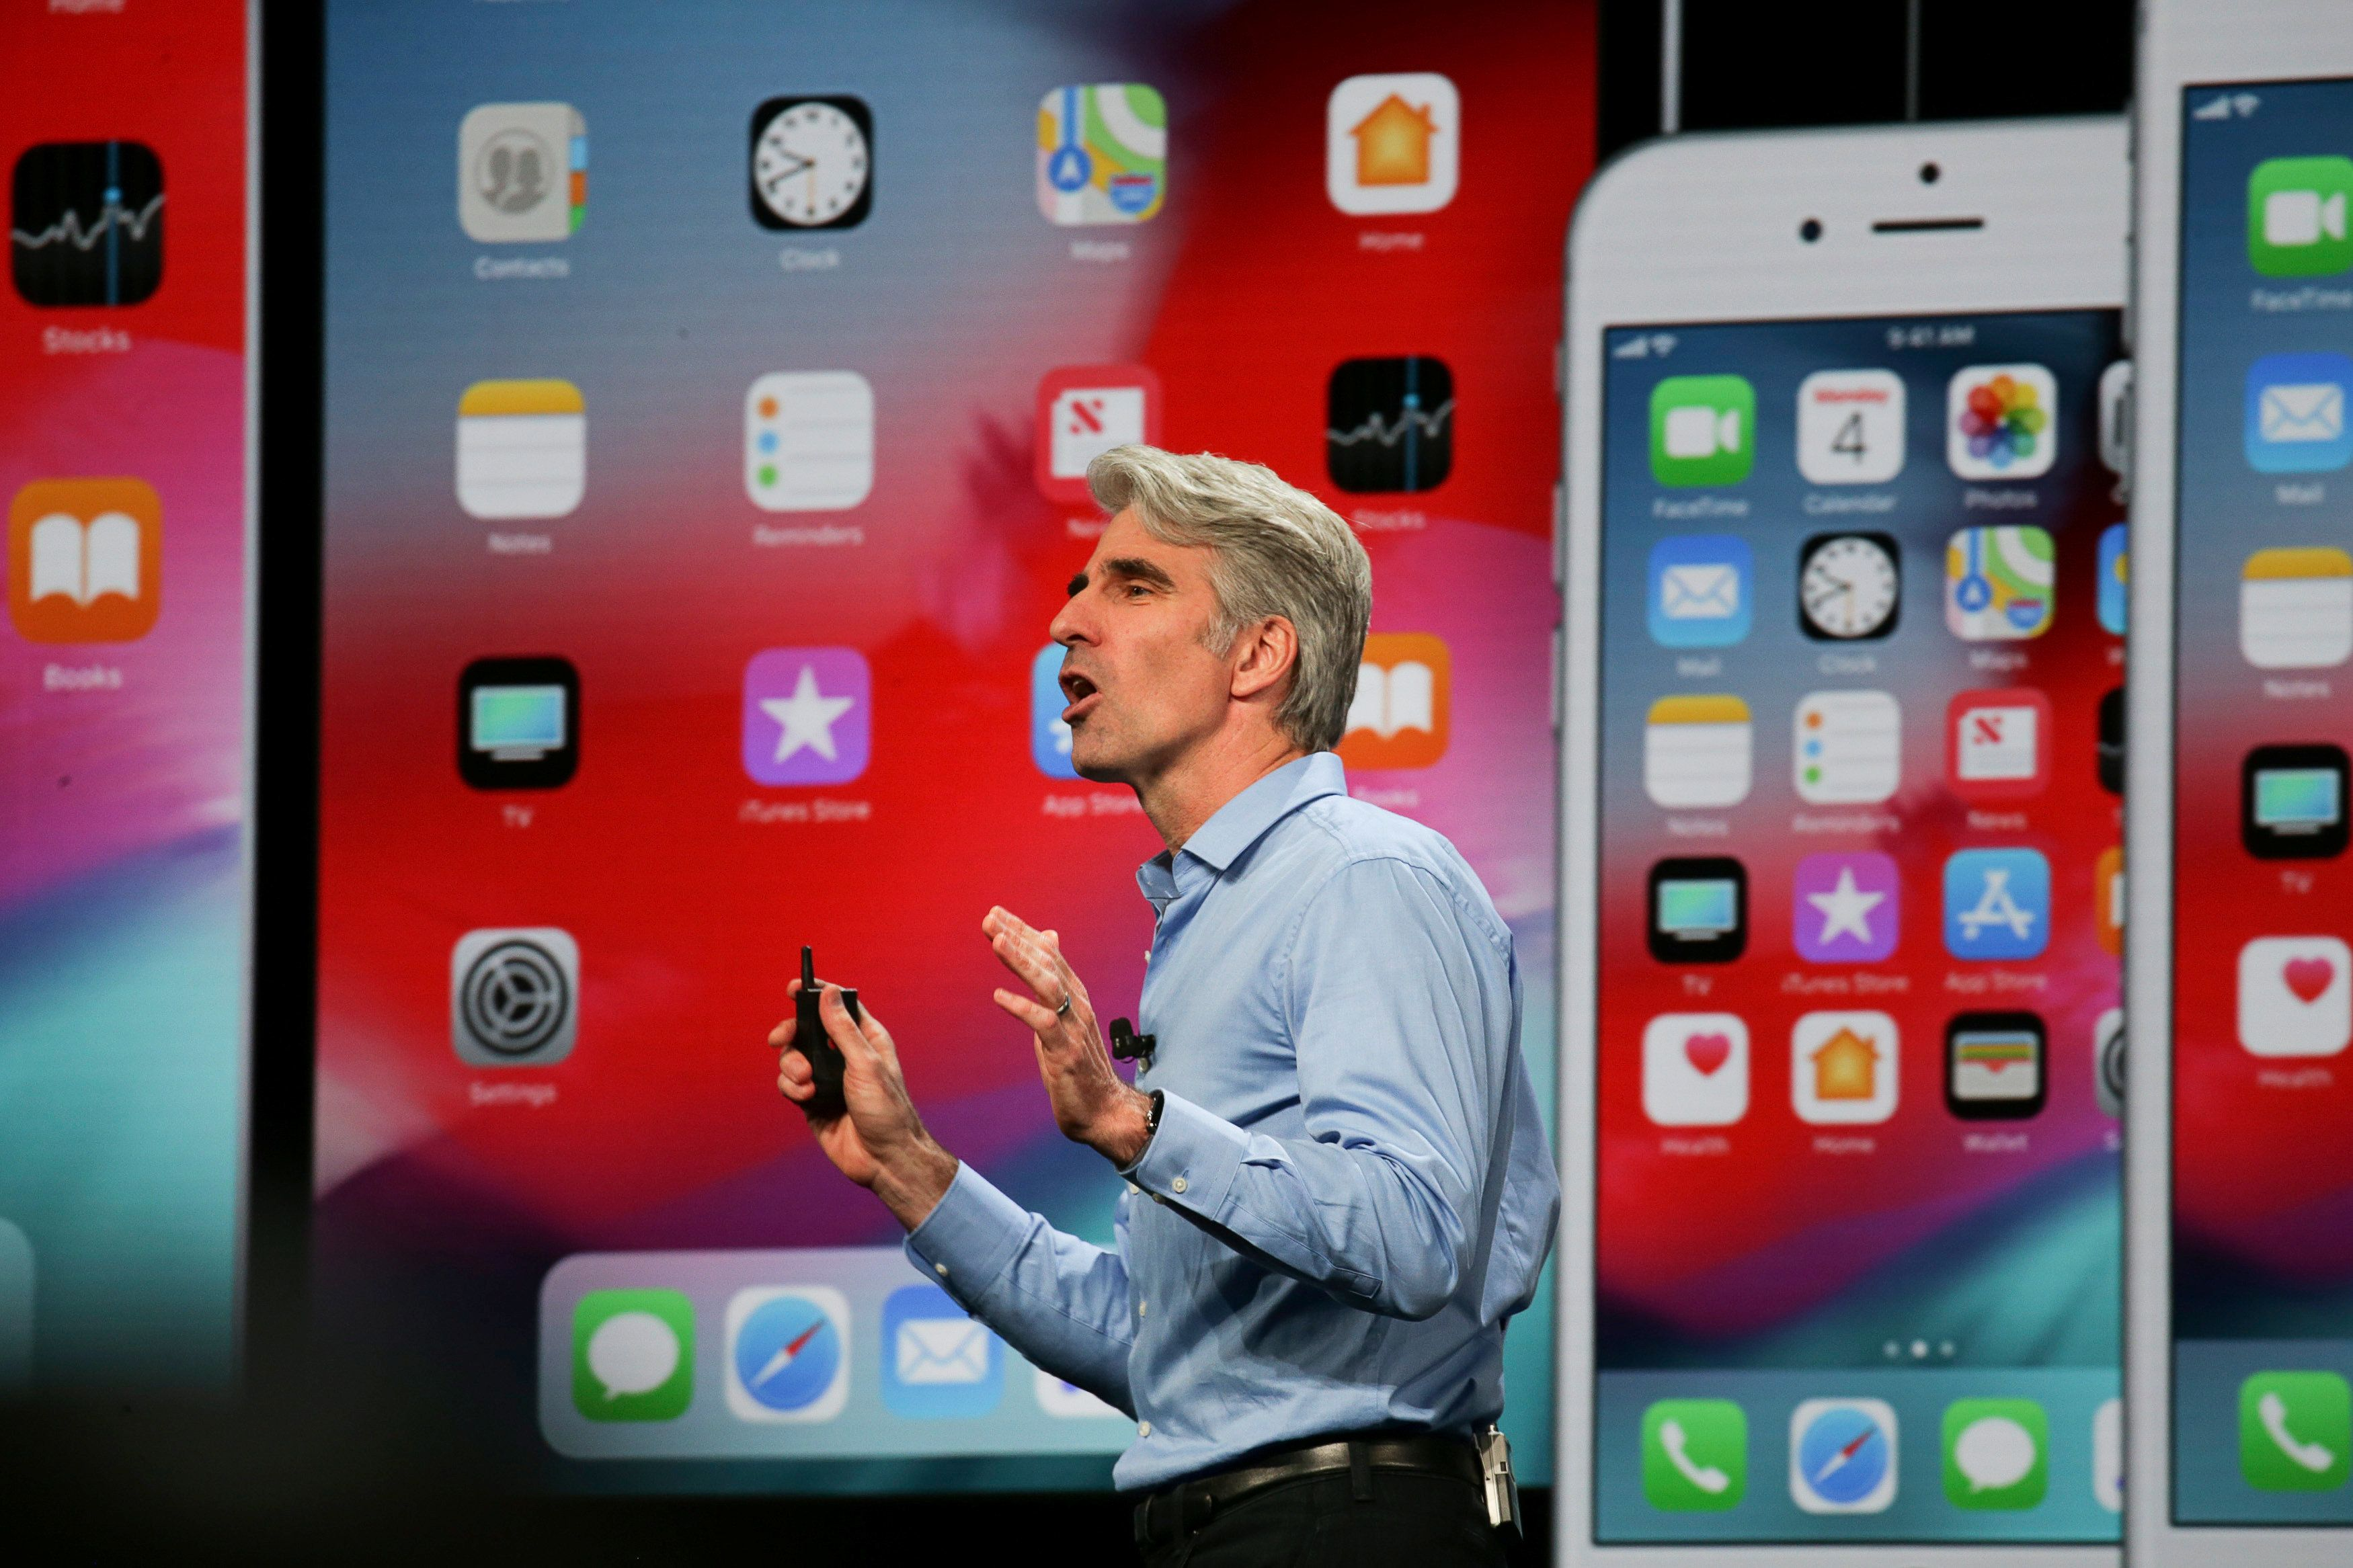 Apple senior vice president of Software Engineering Craig Federighi speaks at the Apple Worldwide Developer Conference (WWDC) in San Jose, California, U.S., June 4, 2018.   REUTERS/Elijah Nouvelage